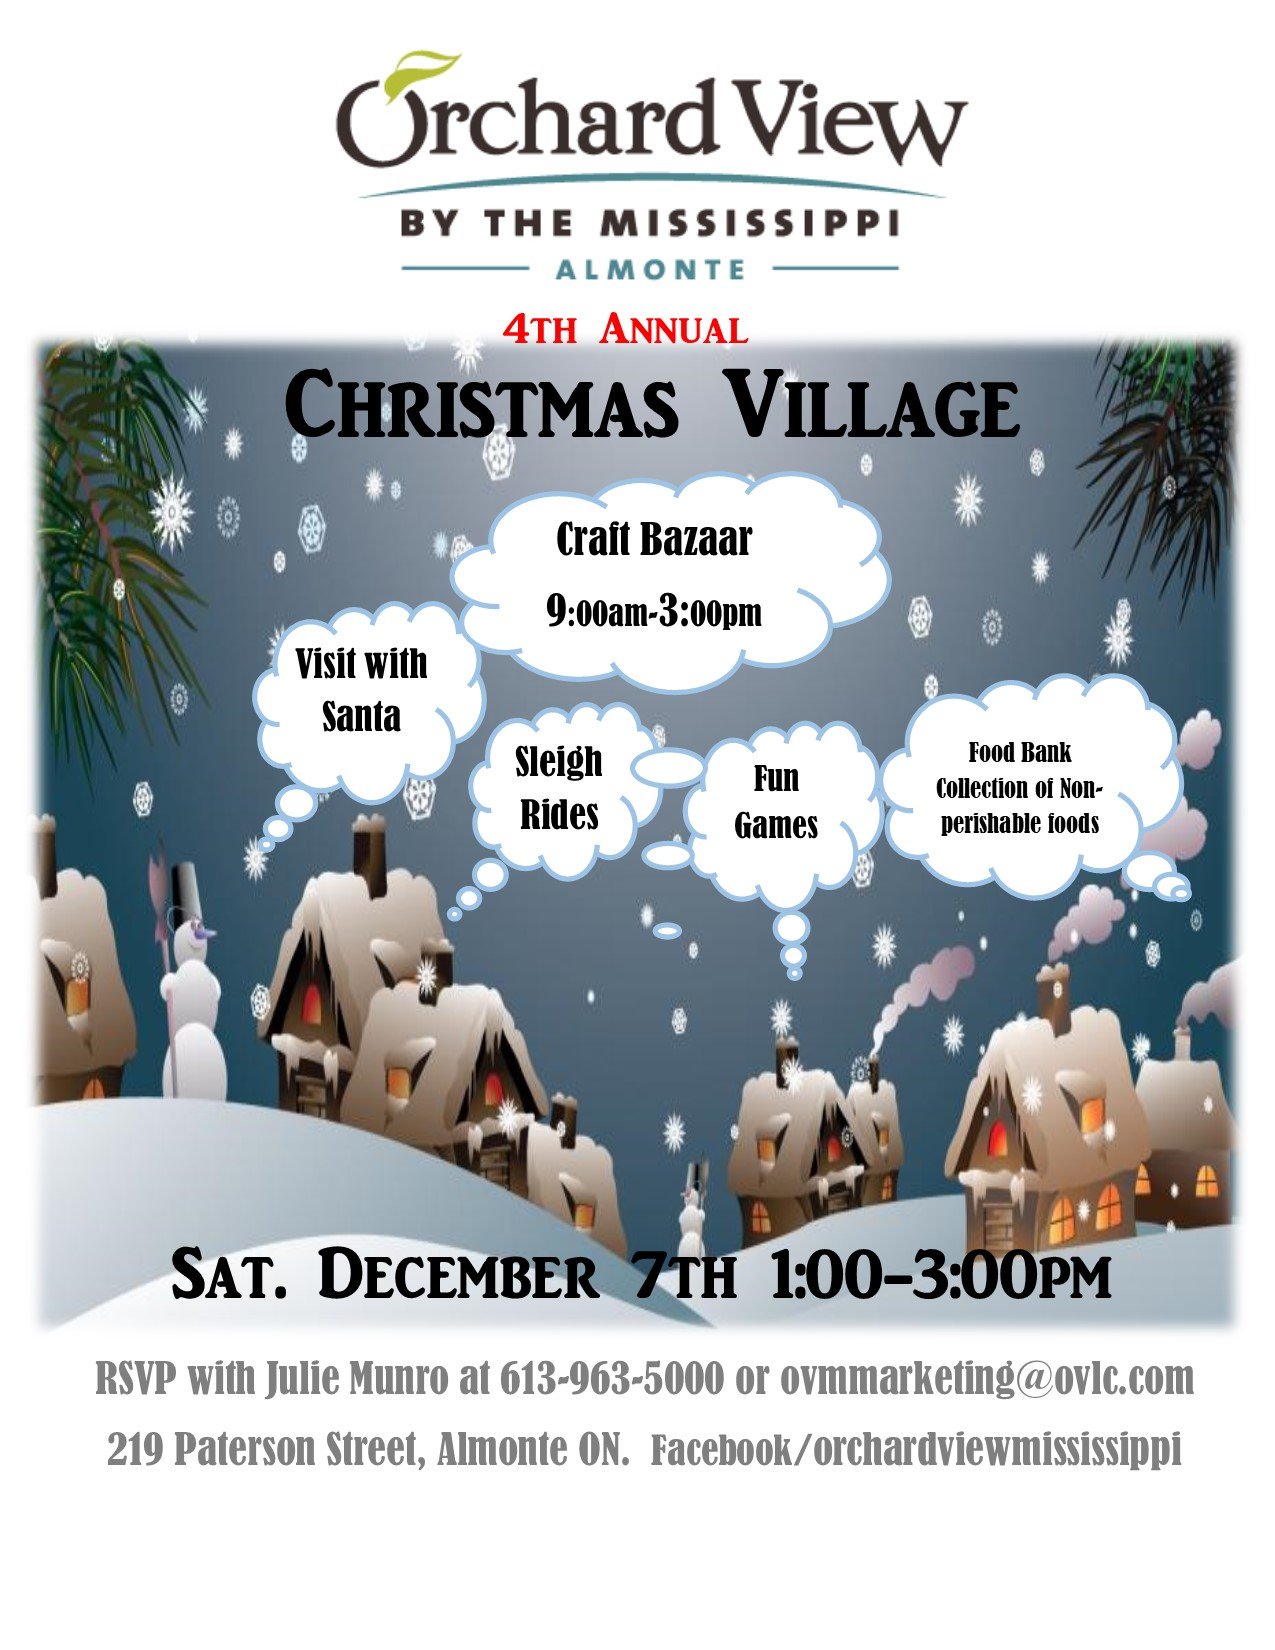 Orchard View by the Mississippi Christmas Village 2019 Dec 7th. 10am to 3pm for unique vendors and Christmas fun with Santa